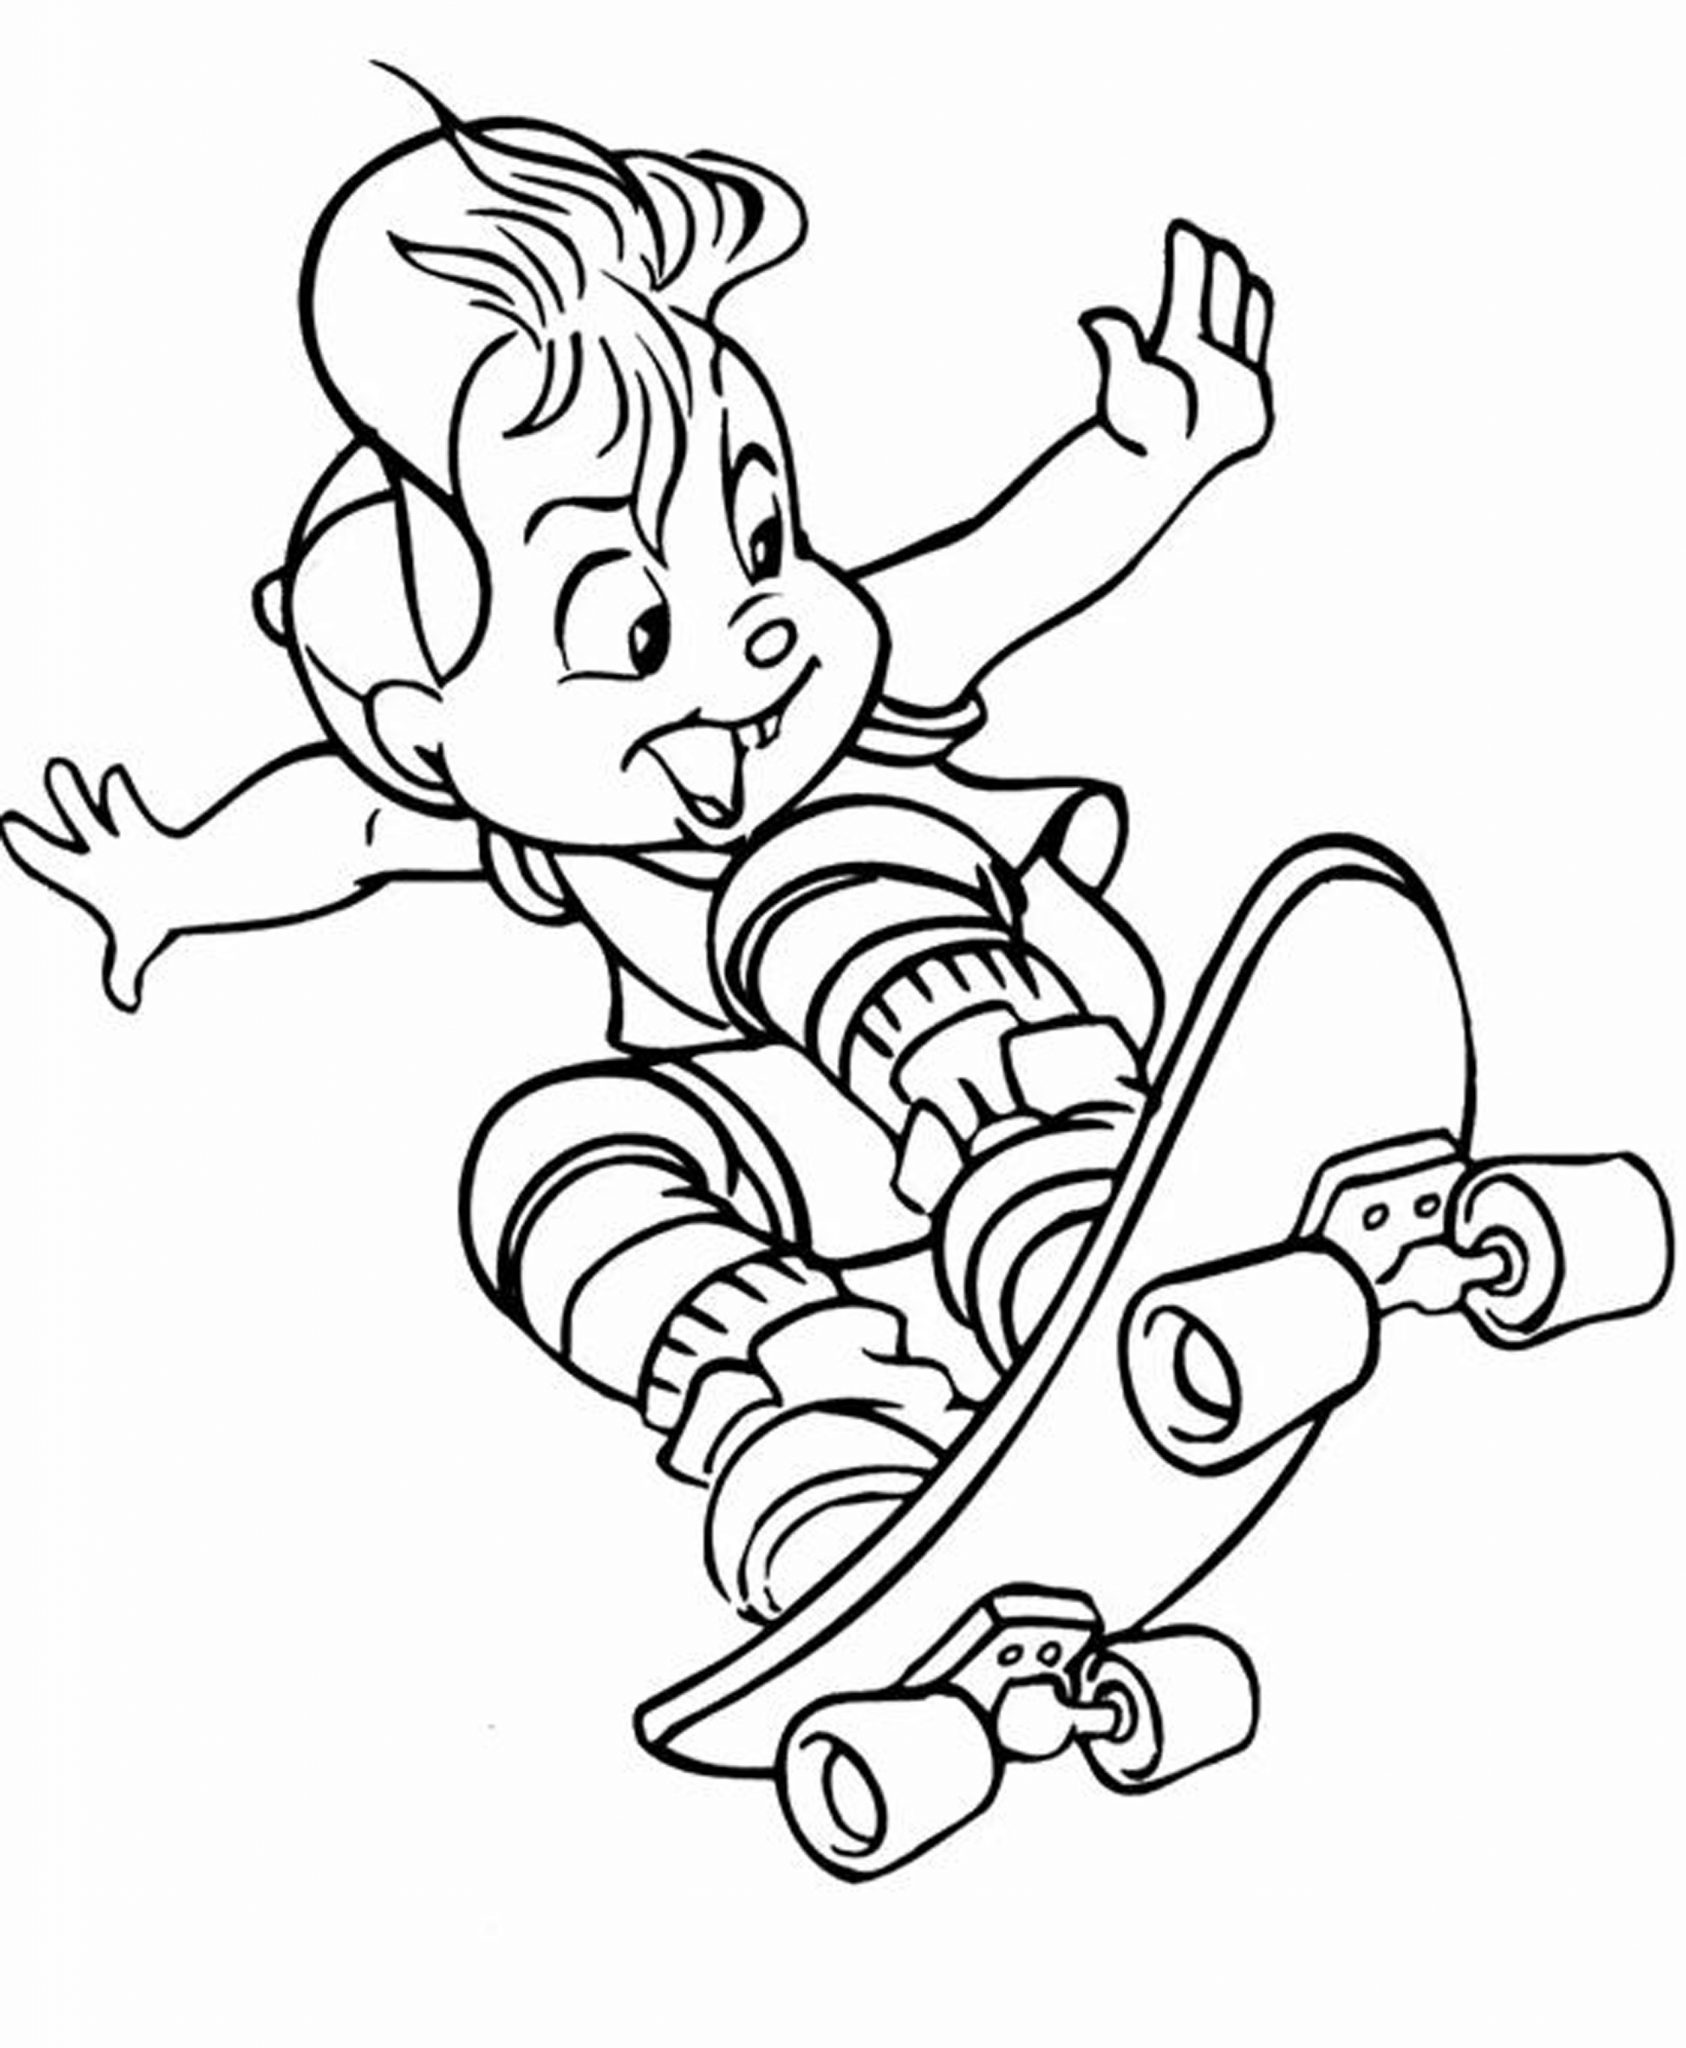 boy coloring pages two boys playing baseball coloring page download print pages coloring boy